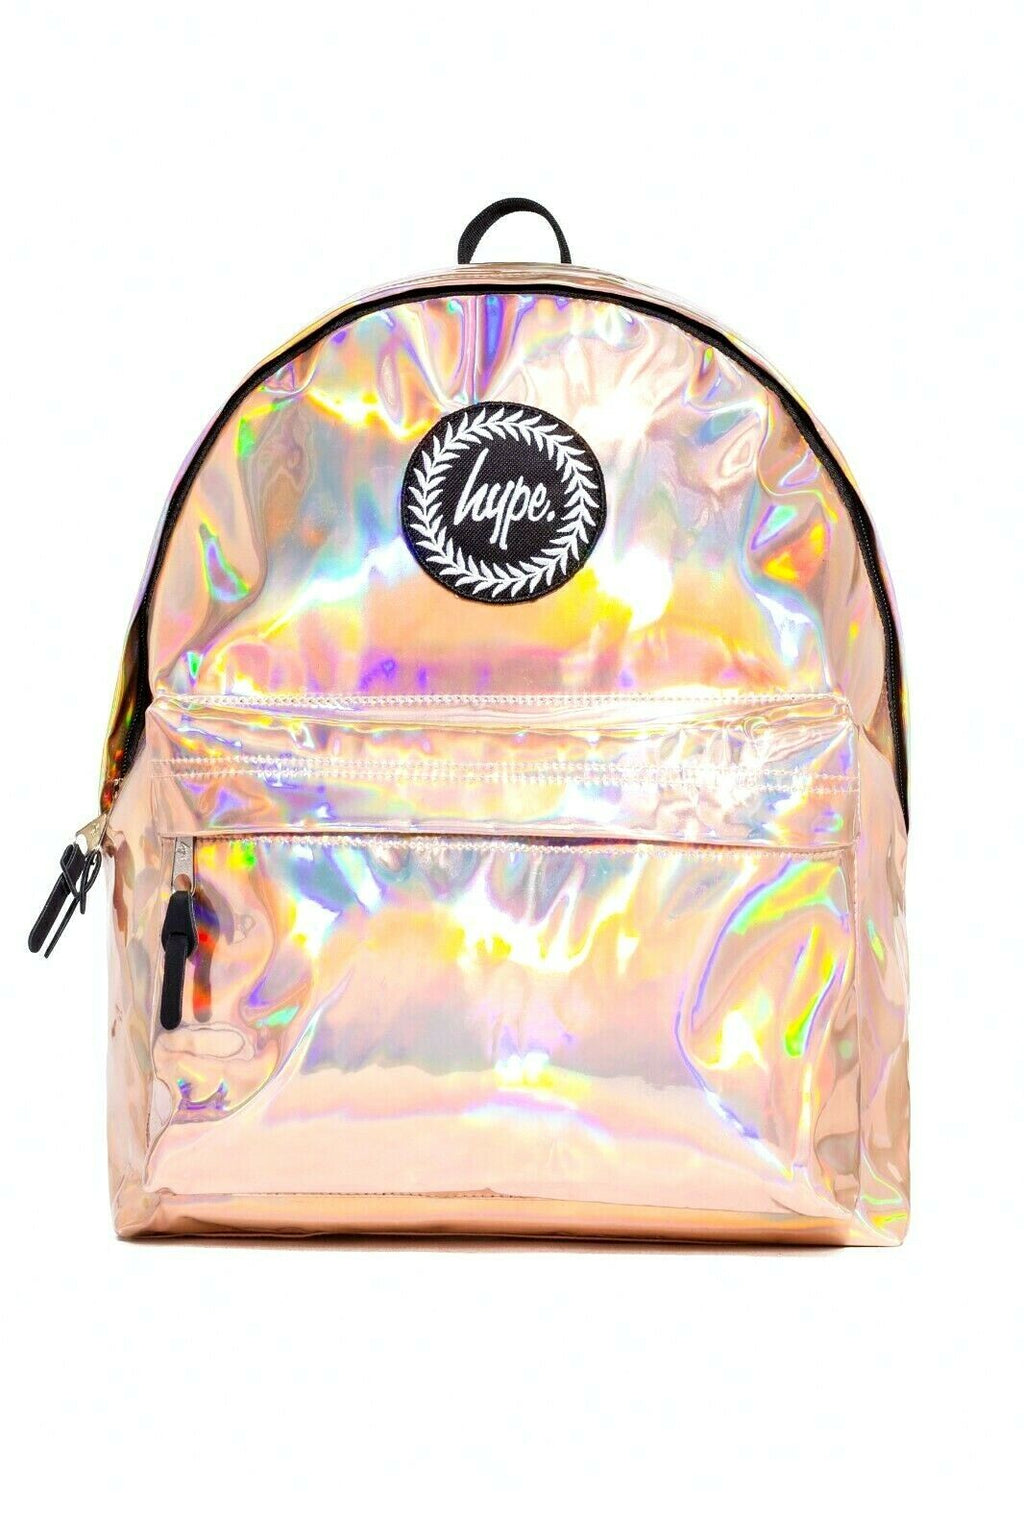 HYPE HOLOGRAPHIC BACKPACK RUCKSACK BAG - ROSE GOLD